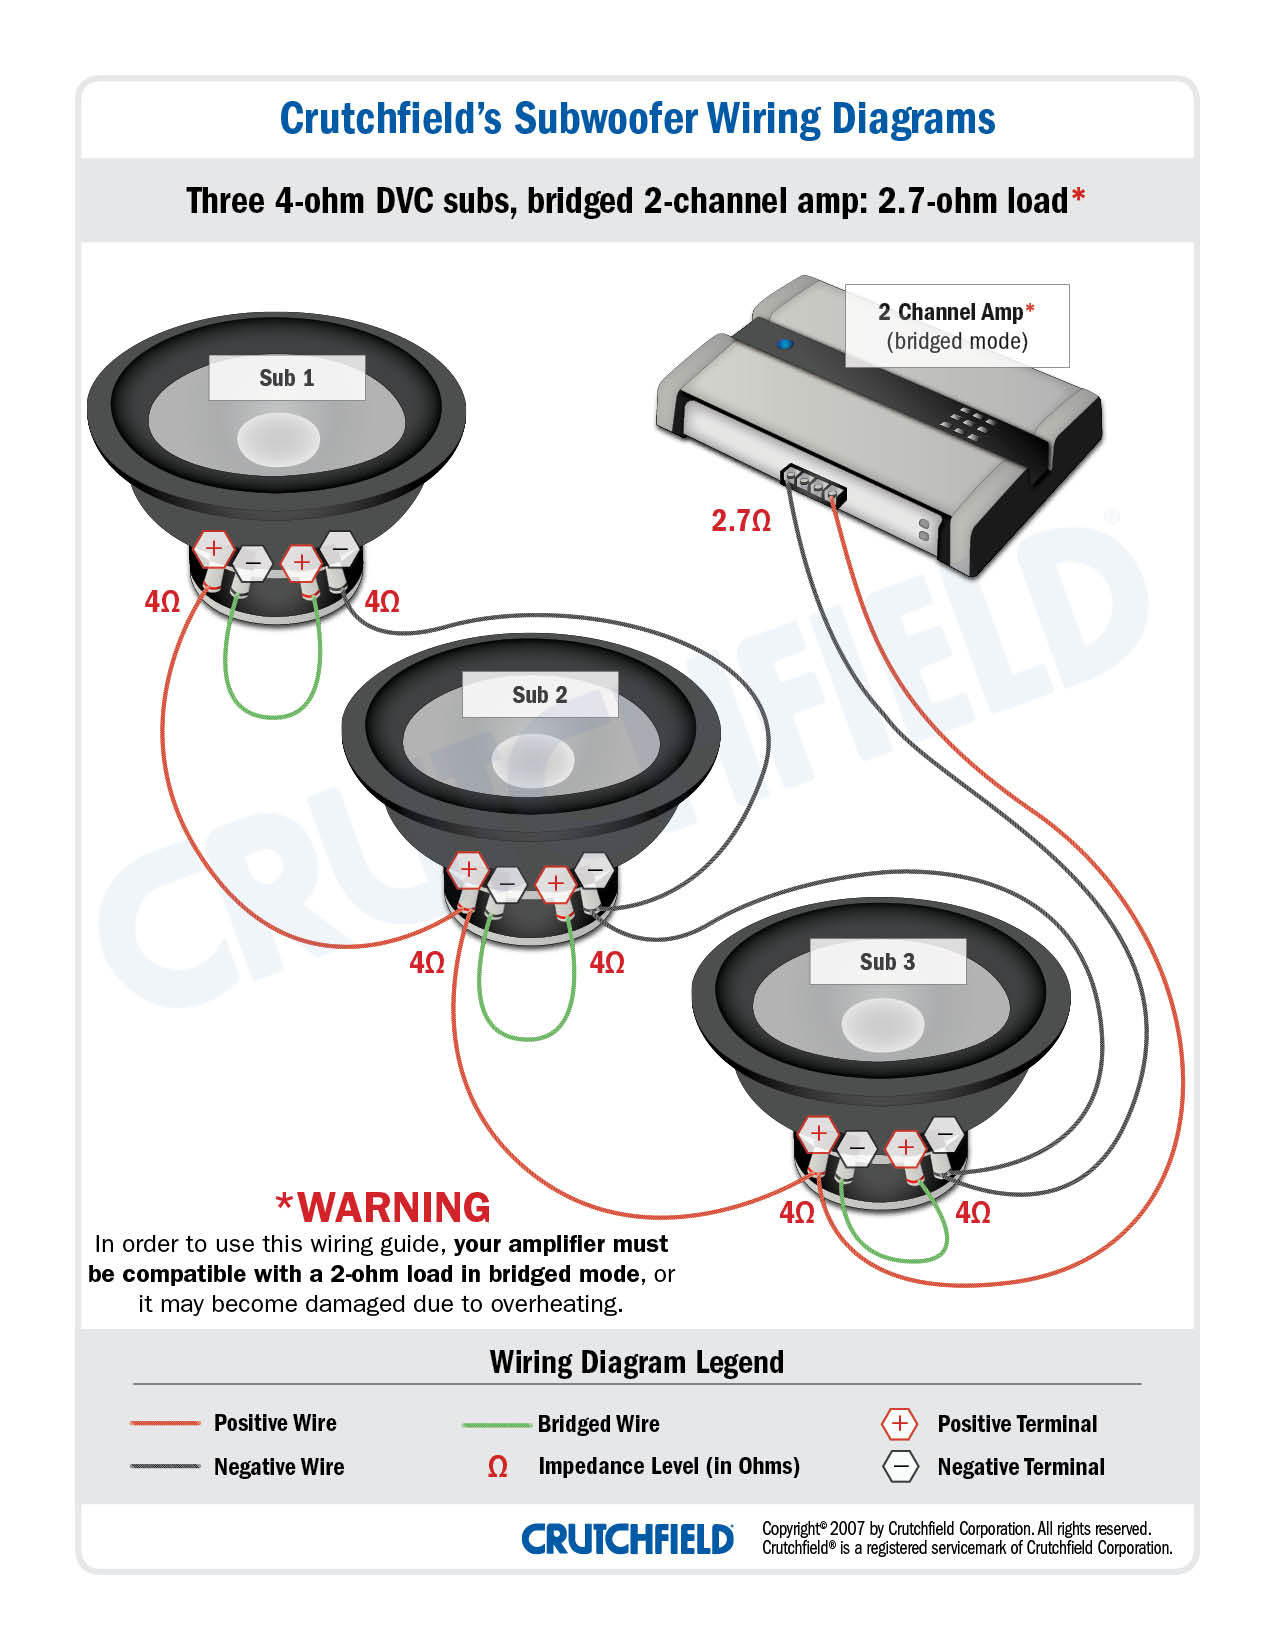 wiring 4 speakers to a 2 channel amp wiring image subwoofer wiring diagrams on wiring 4 speakers to a 2 channel amp